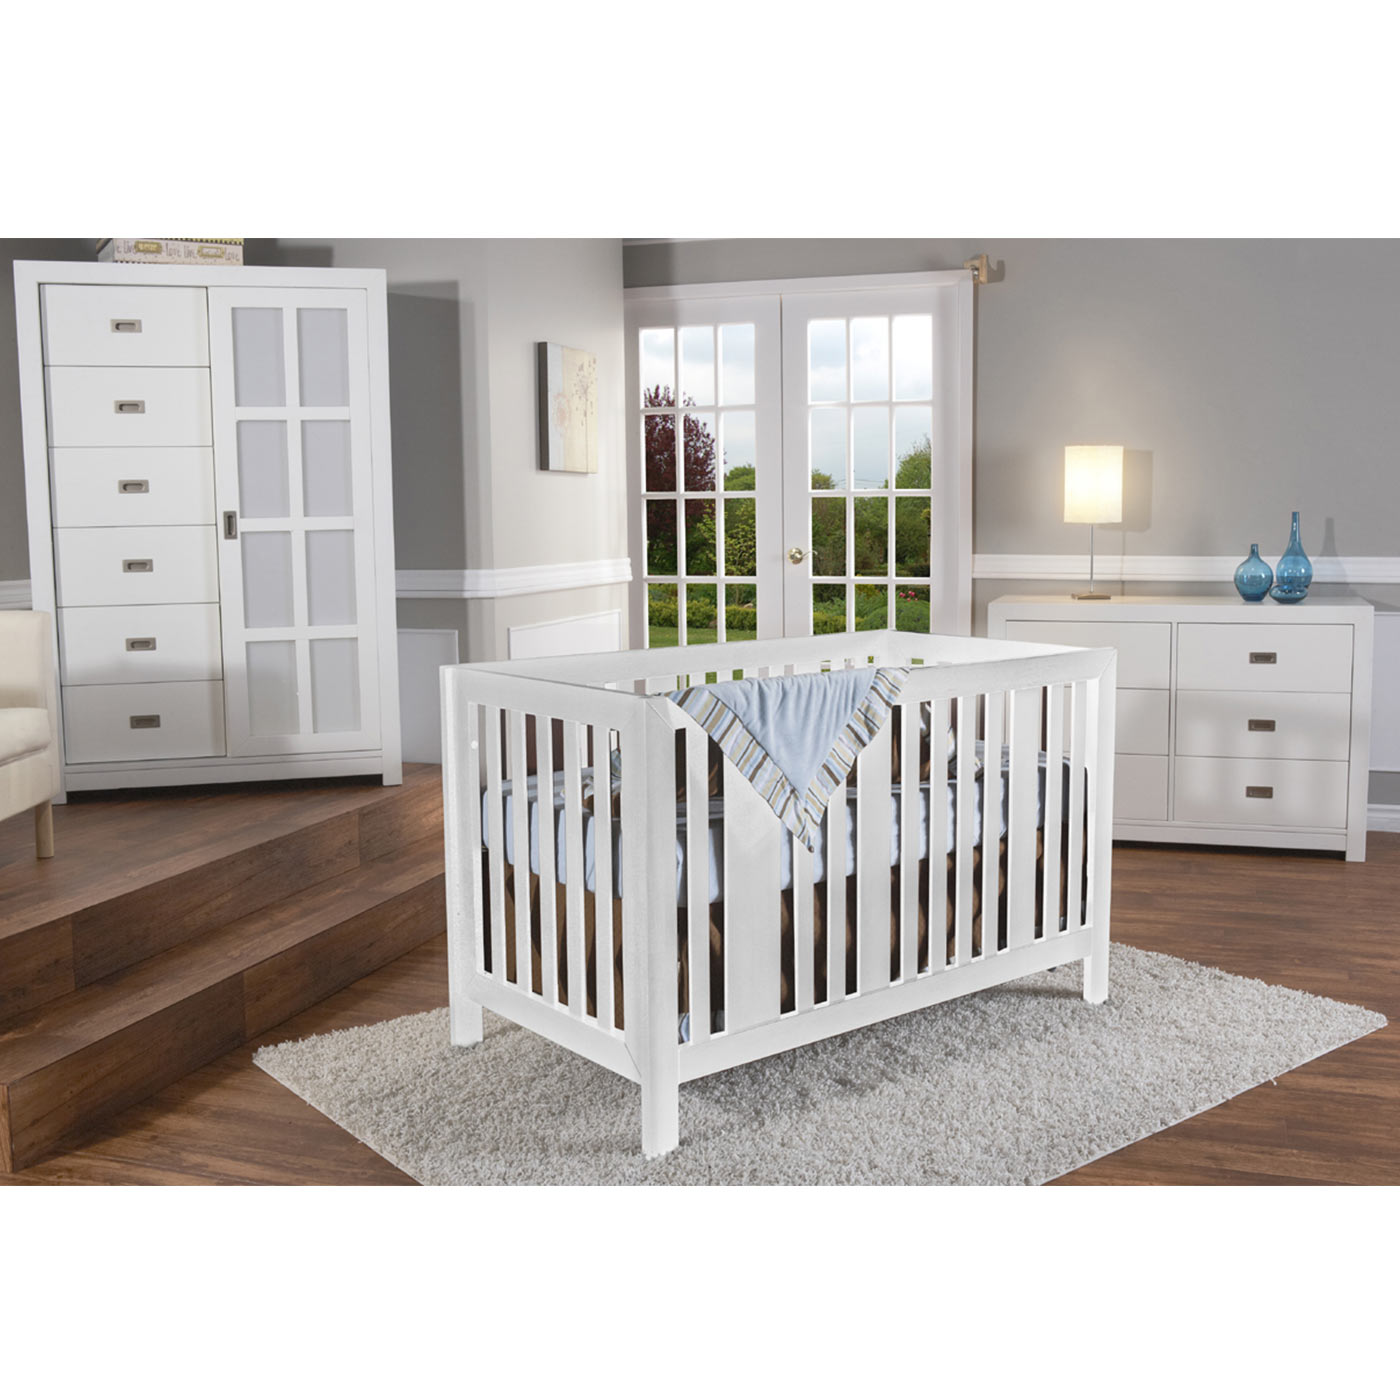 Pali Imperia Forever Crib in White FREE SHIPPING $539 00